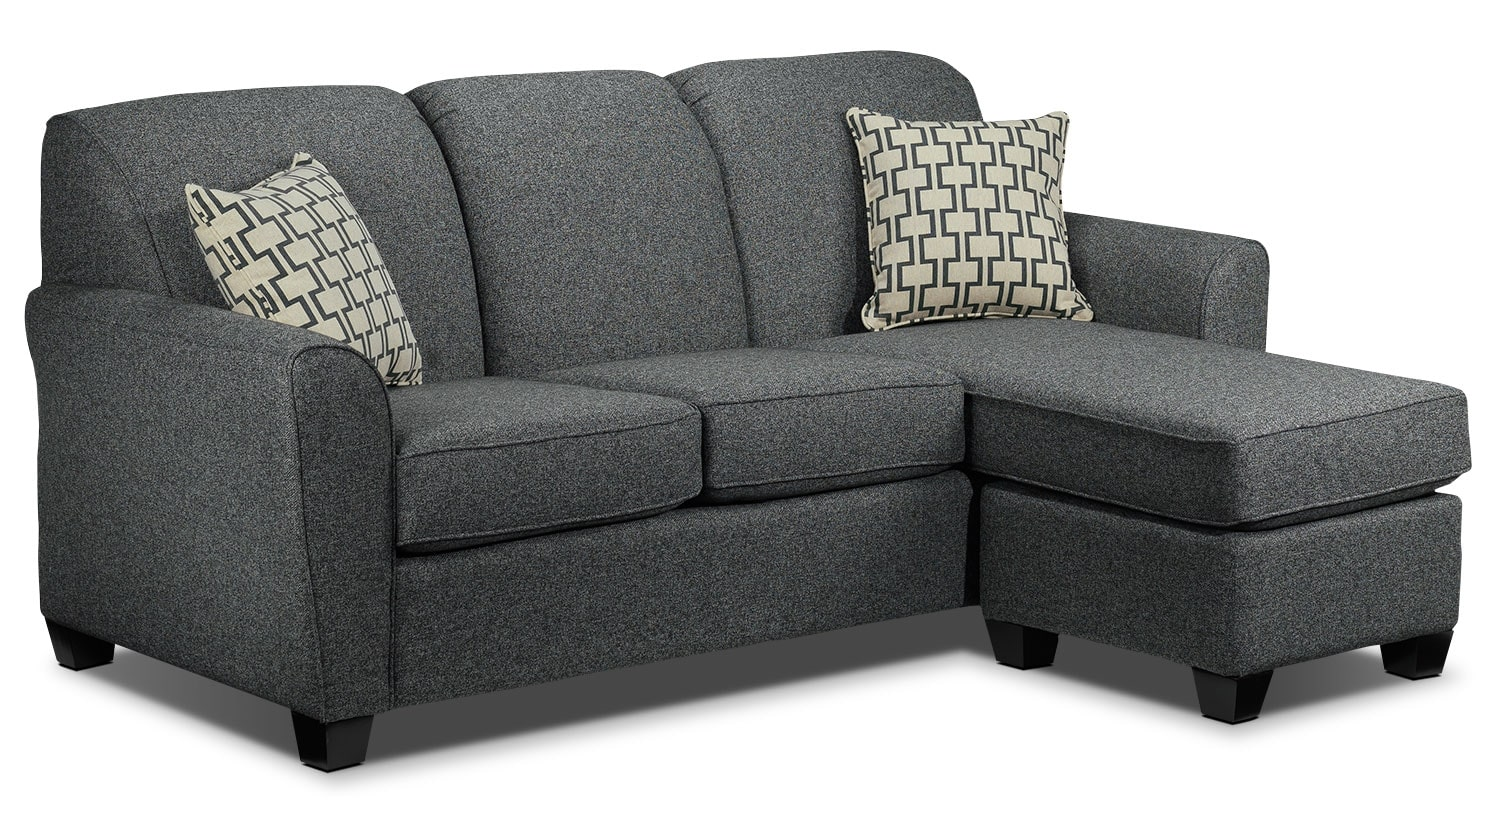 Leons Sofa Beds Athina 2 Piece Right Facing Queen Sofa Bed